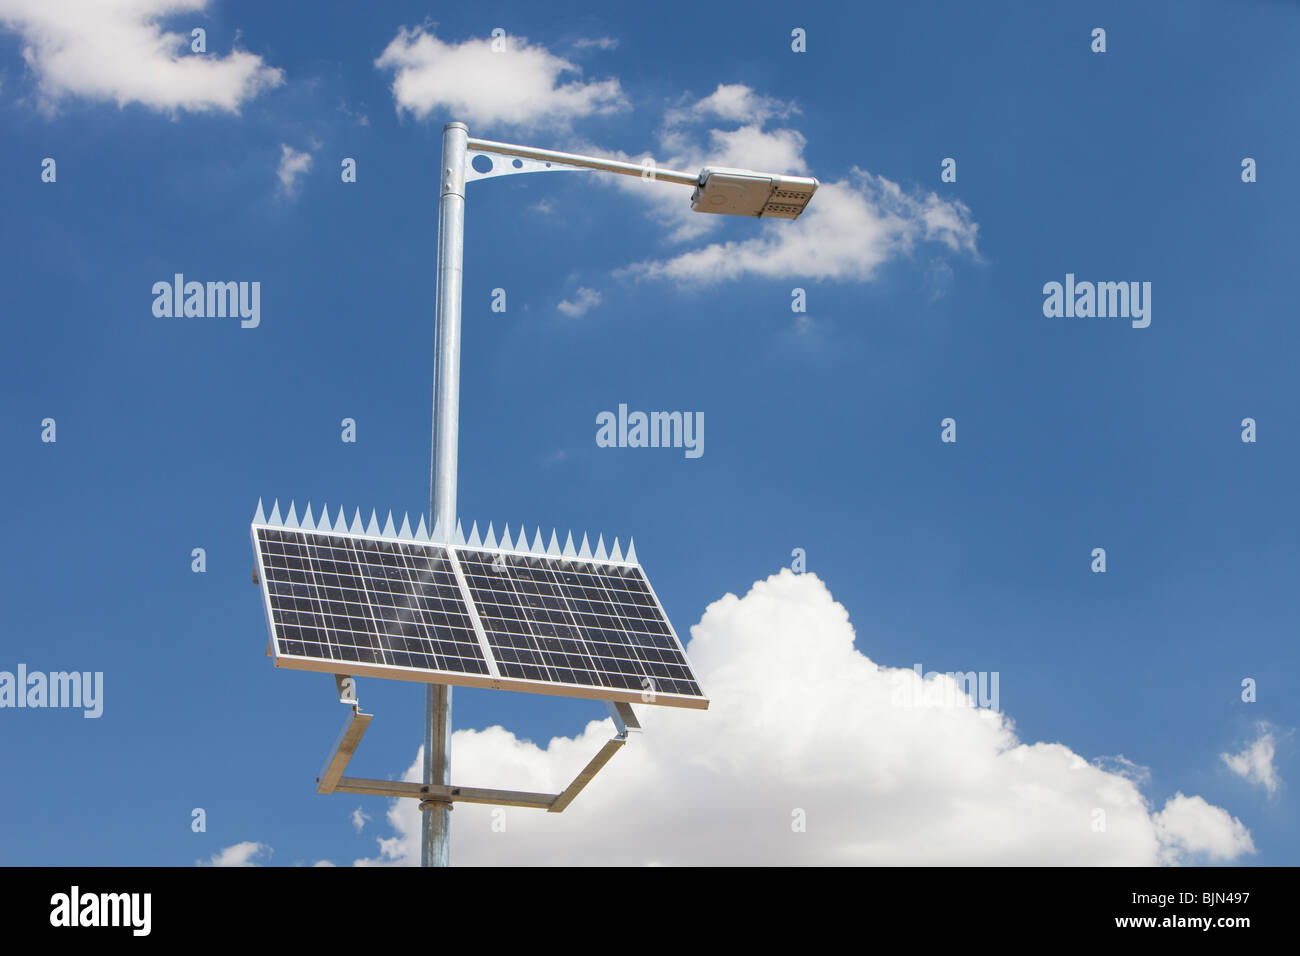 A solar powered street lamp in Victoria, Australia Stock